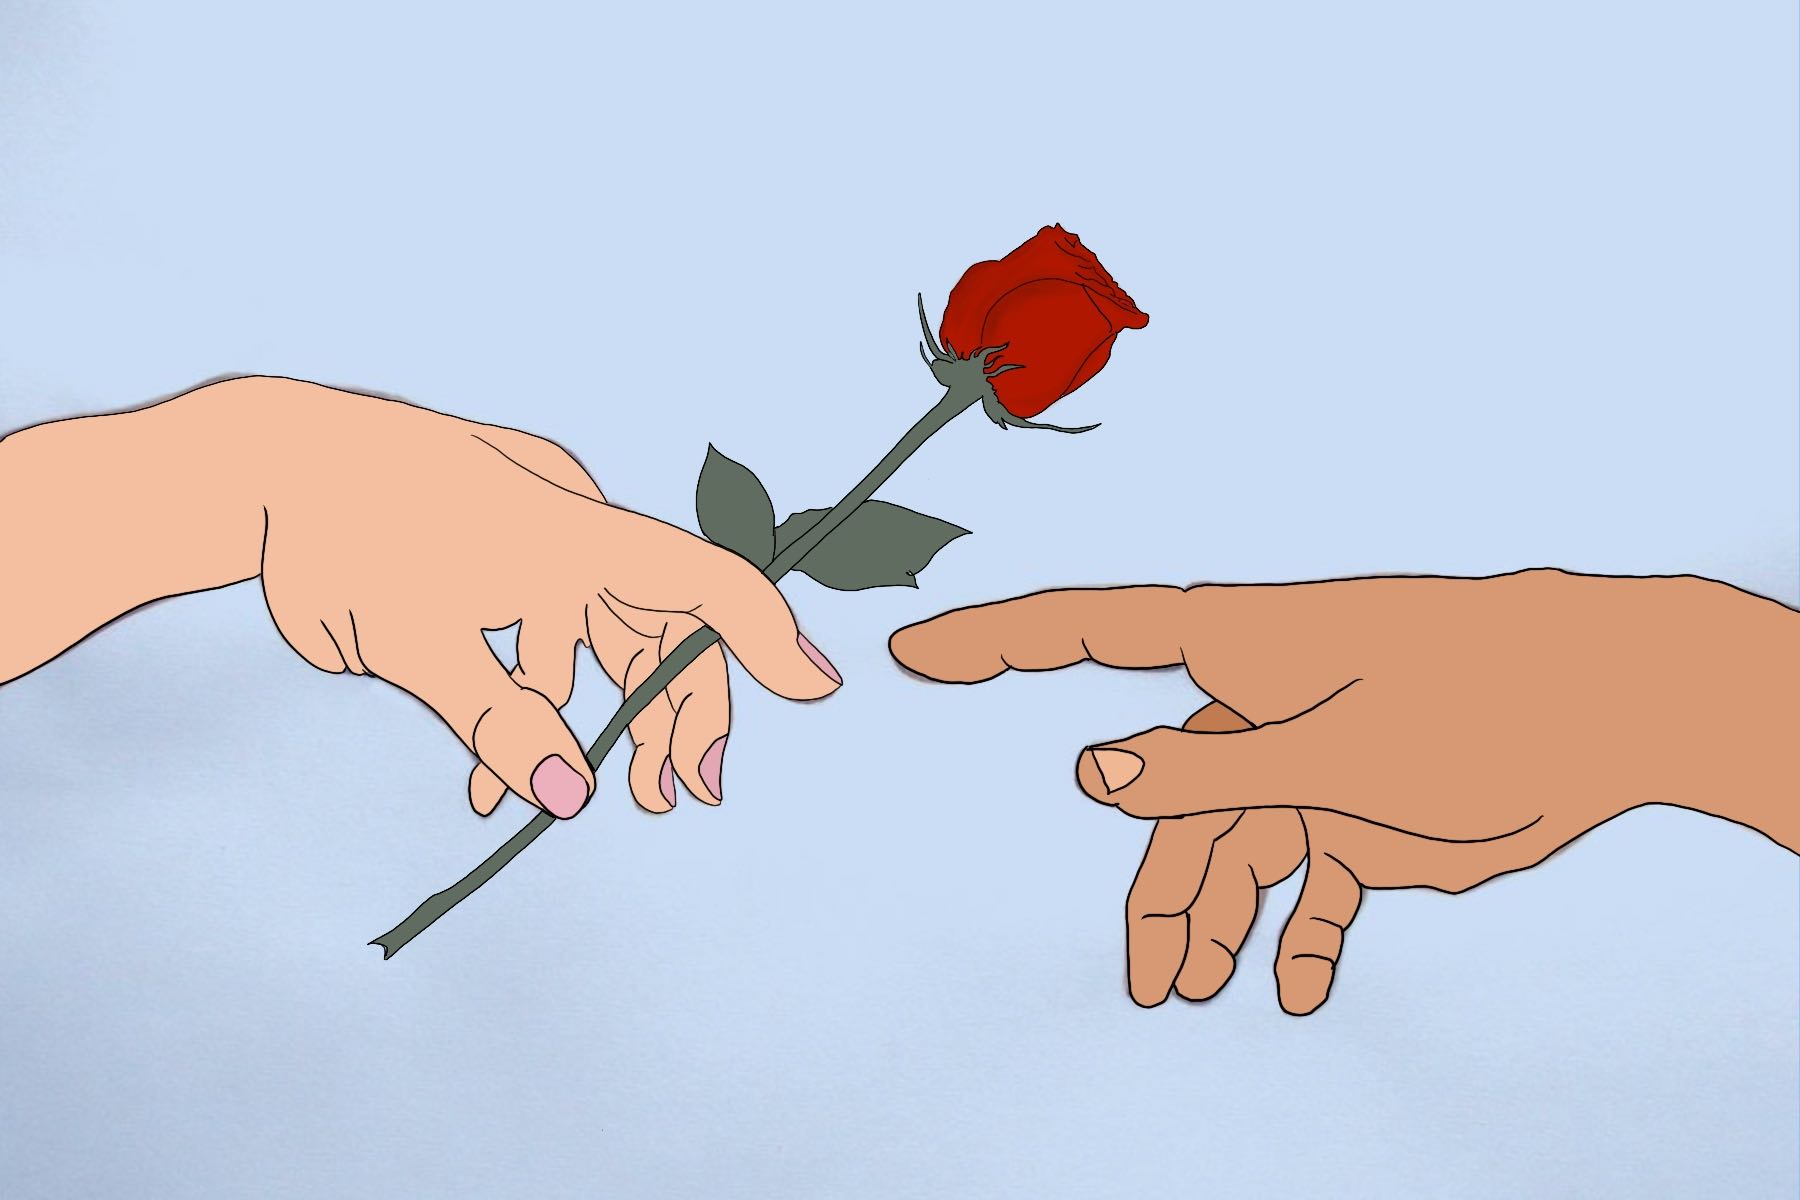 Illustration of the rose from the show The Bachelor